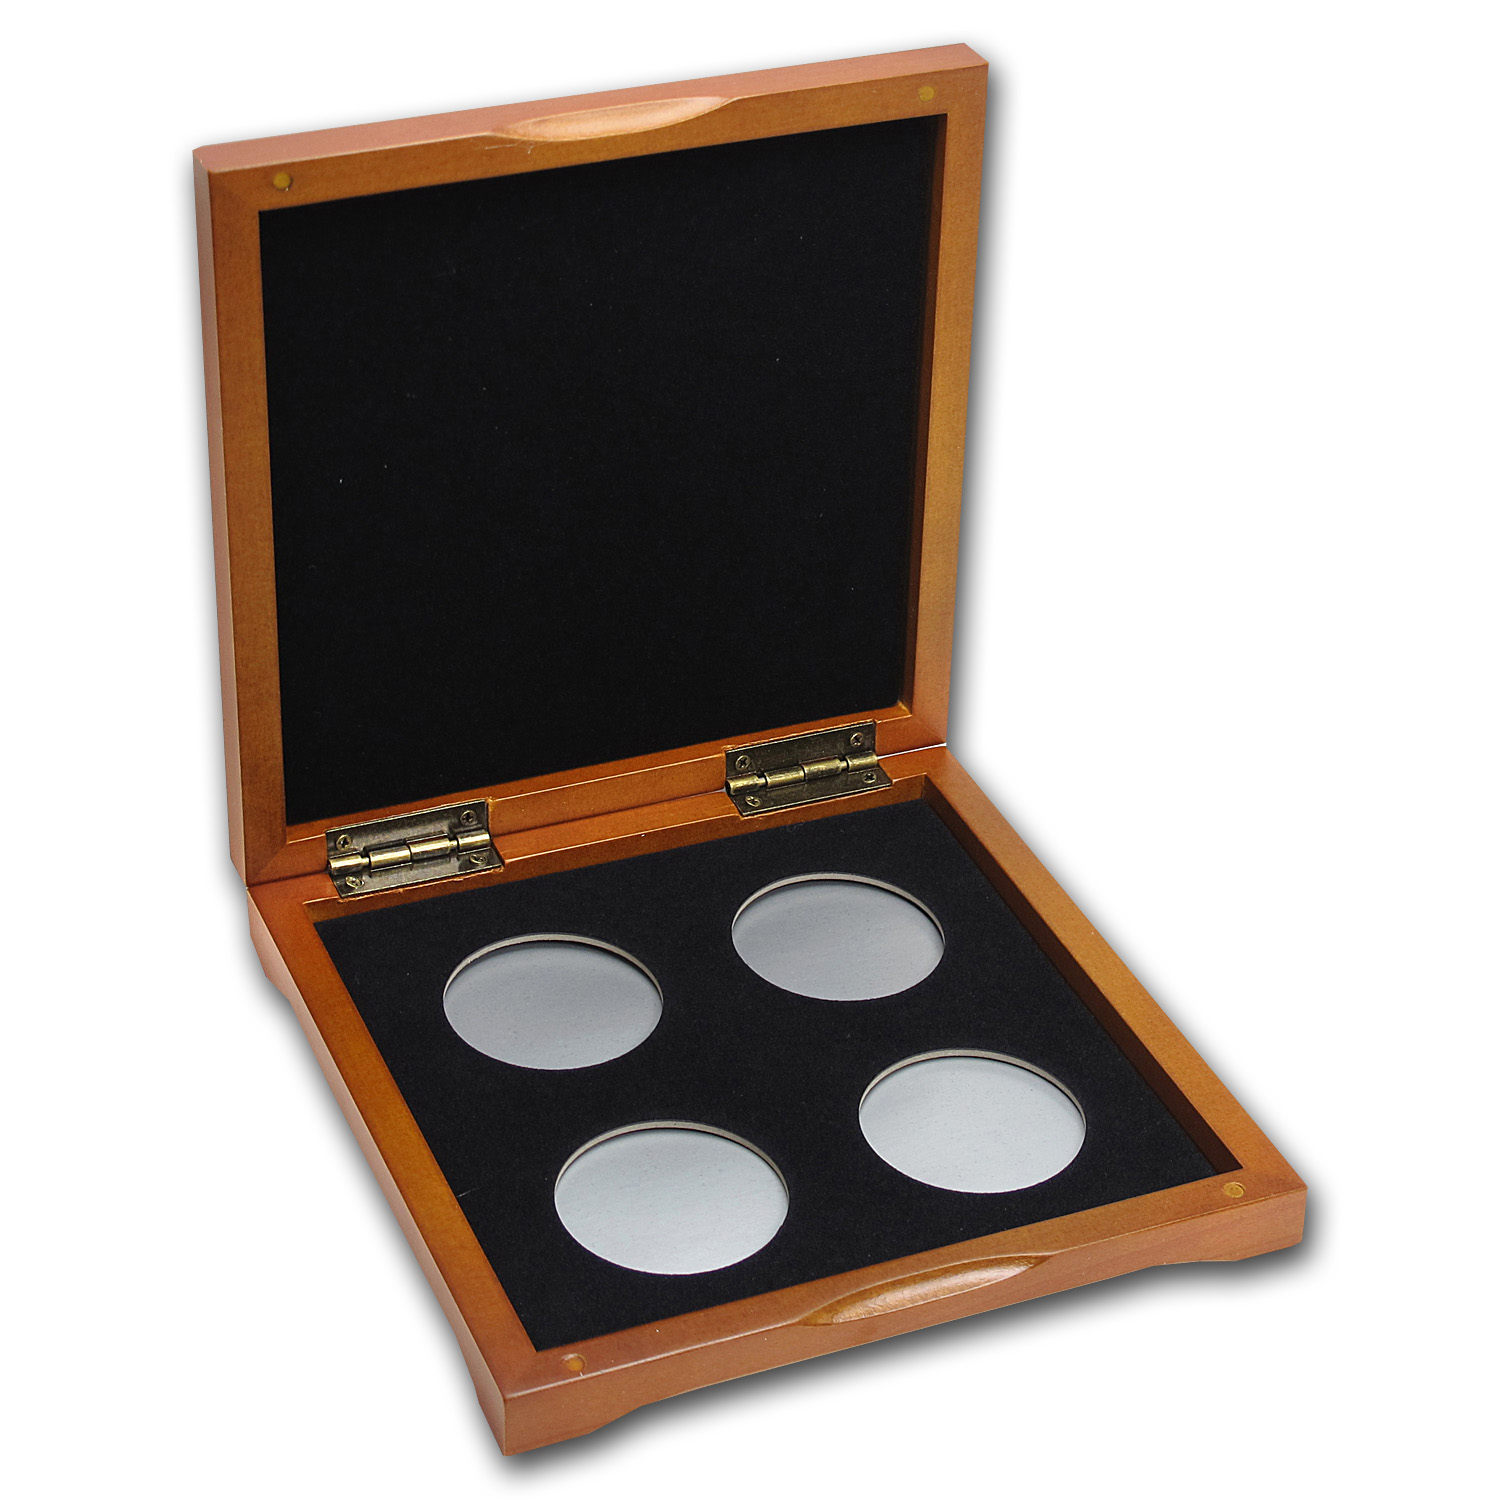 4 Coin Wood Presentation Box Fits Up To 40mm